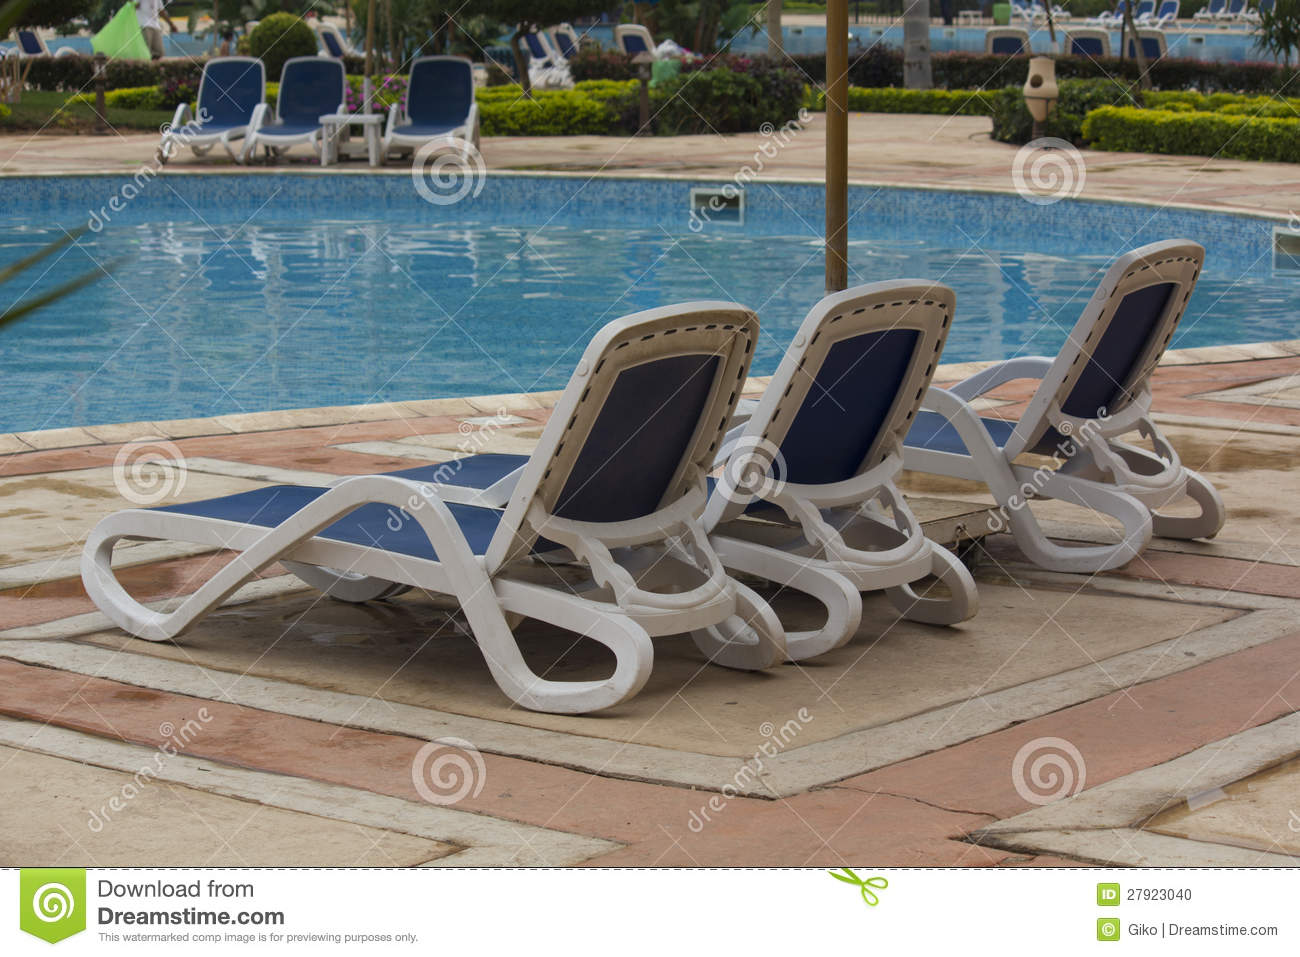 Pool Lounge Chair Swimming Pool Lounge Chairs Stock Photo Image Of Grand Concept